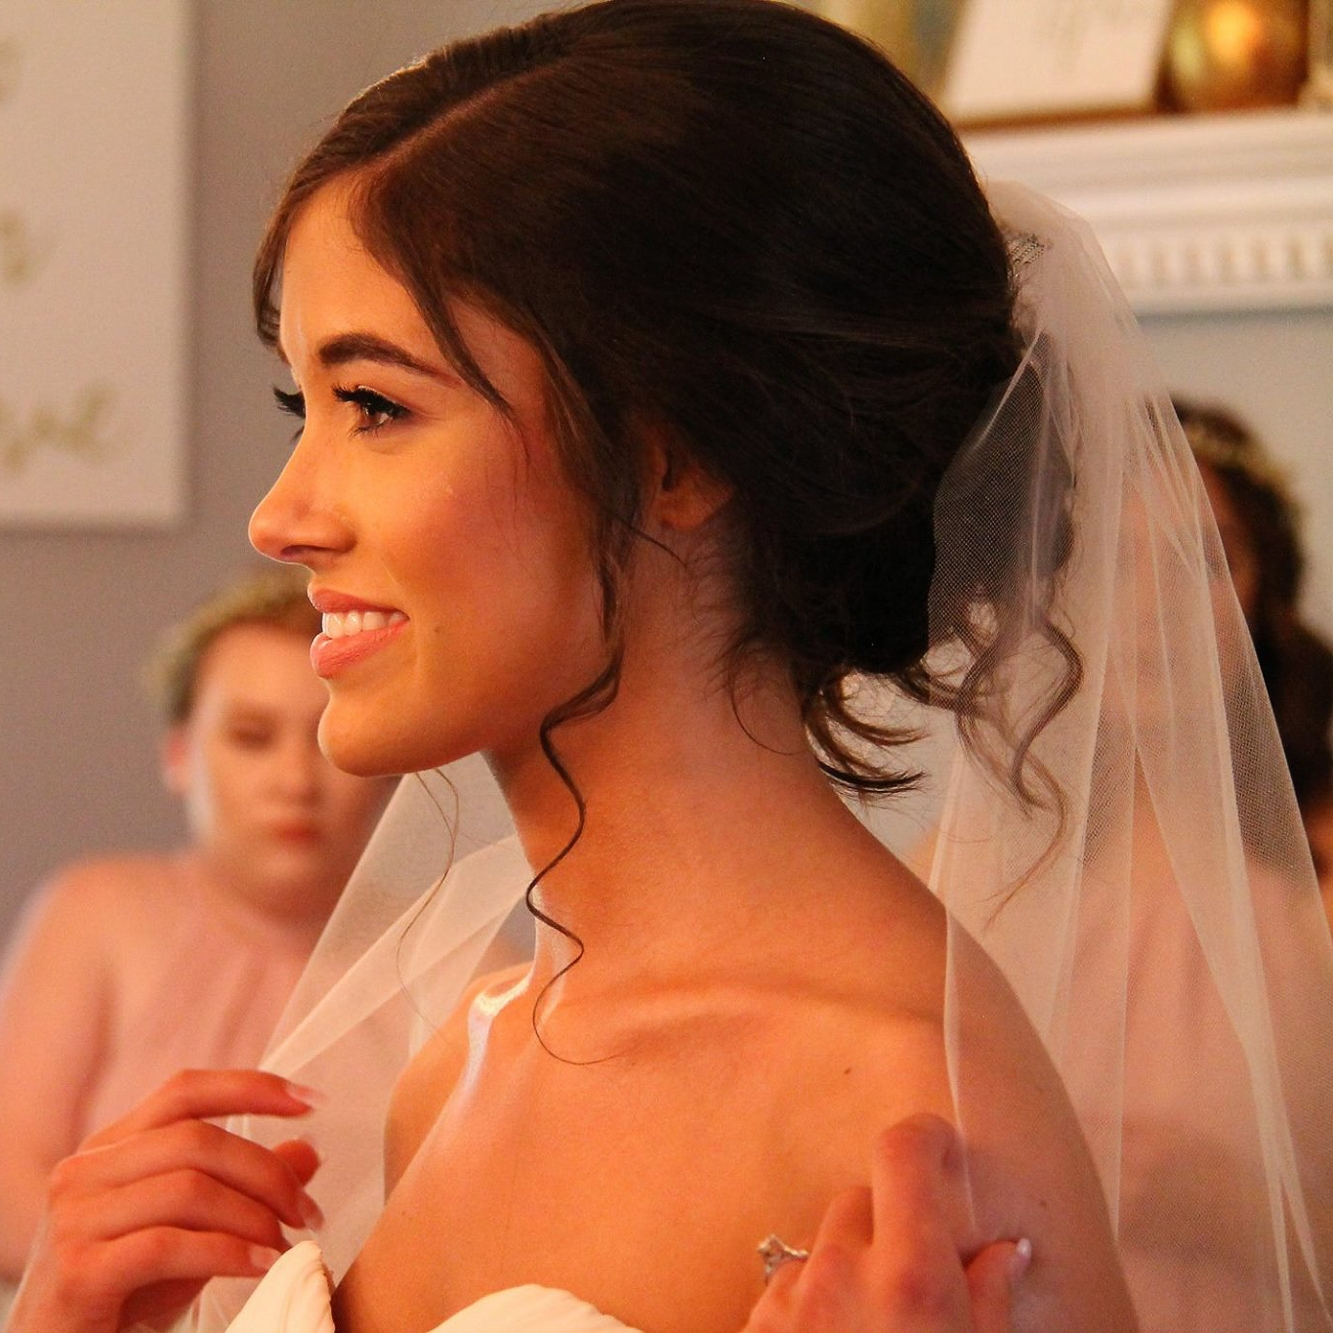 GLAM Brides! - Your big day deserves gorgeous looks! Don't hold back on creating your best look!